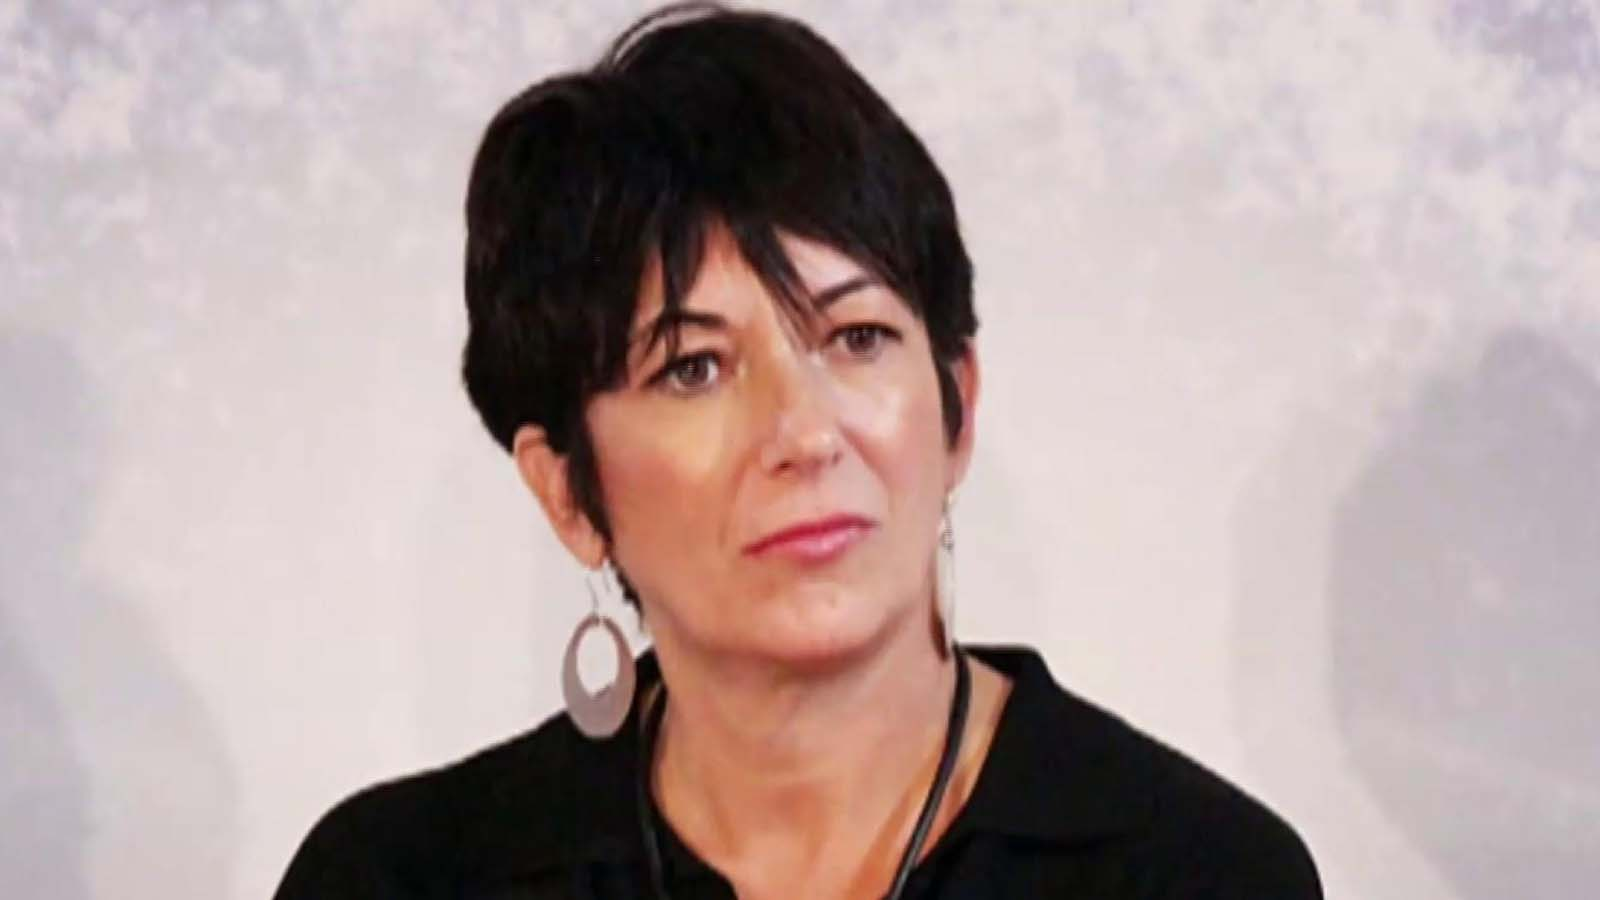 As part of her upcoming trial, Ghislaine Maxwell and her legal team want to be able to name her victims. Should she be allowed to though?